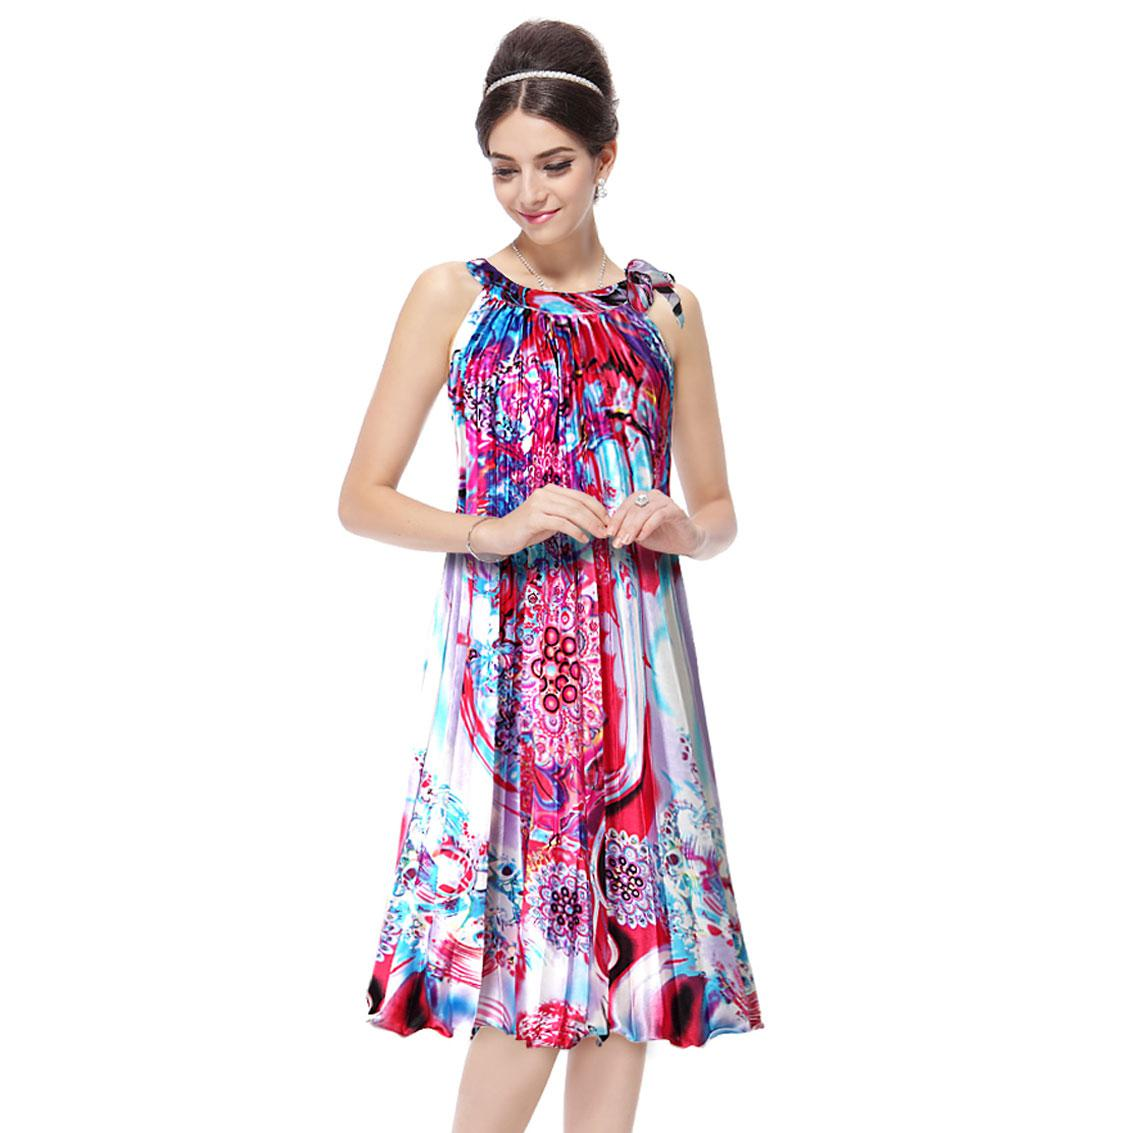 Cocktail Summer Casual Dress Ever Pretty Nwt Round Neck Floral Purple Printed Ruffles He03328 White Dresses Party Long Dresses Women From Ever Pretty